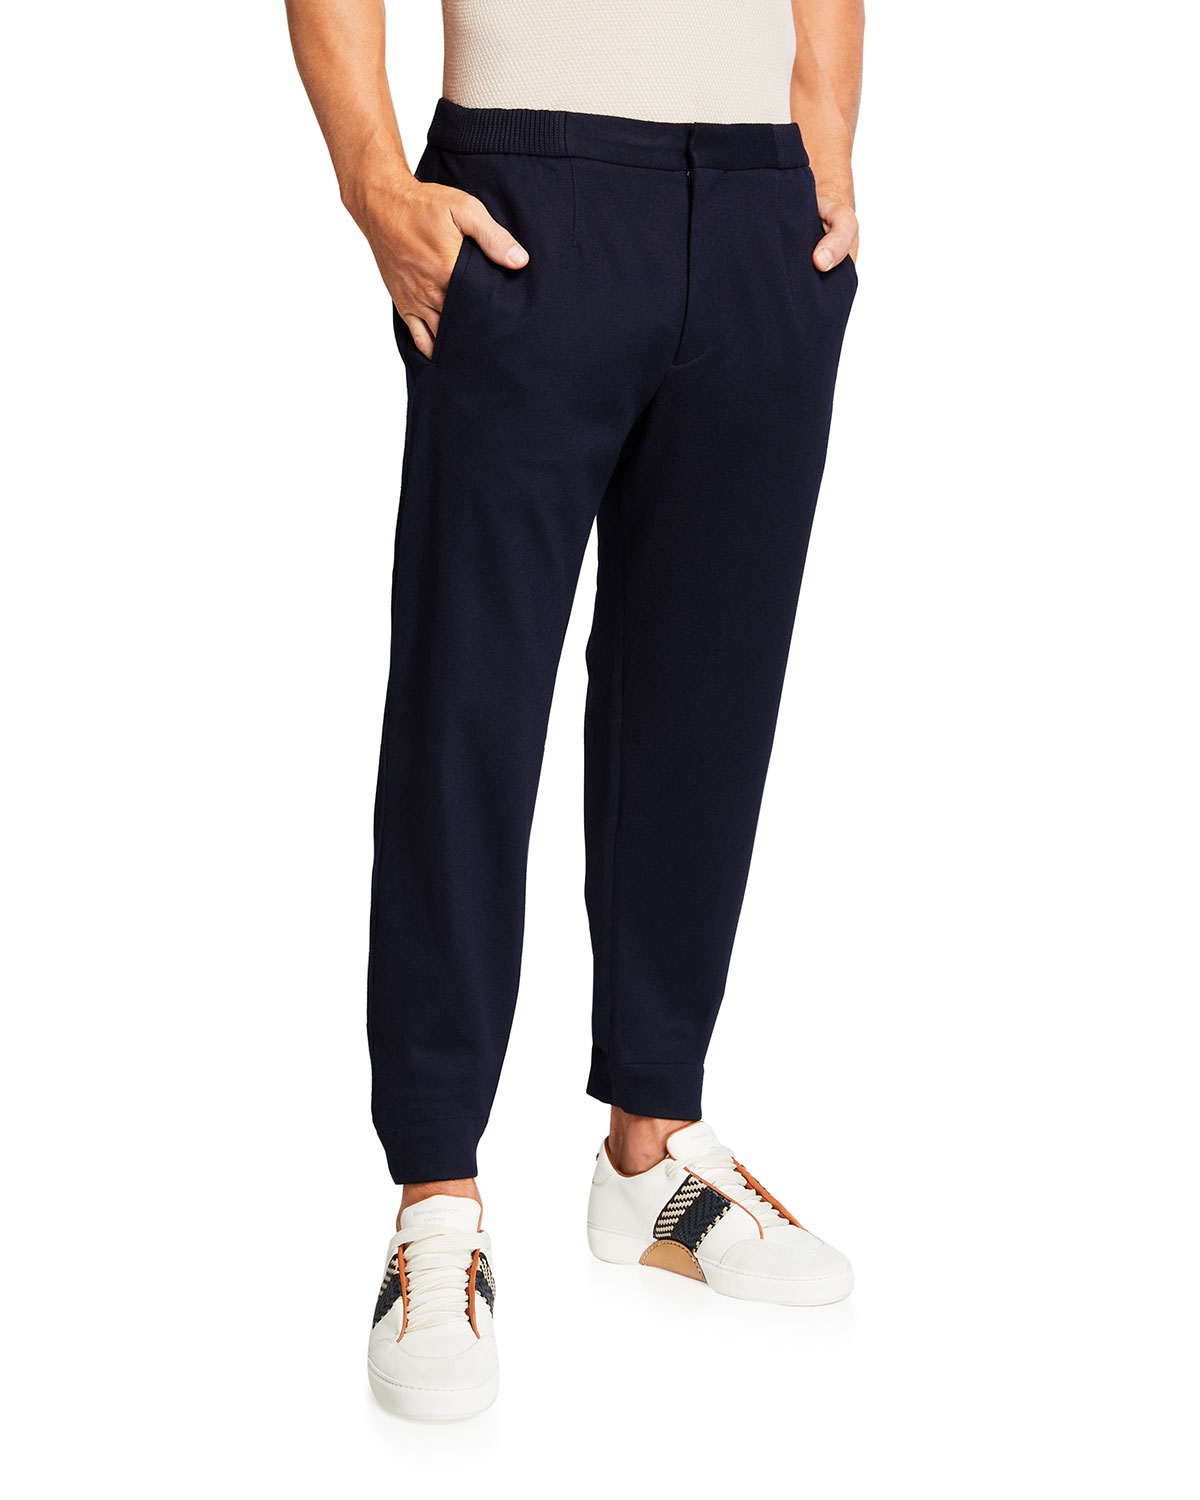 Ermenegildo Zegna Men's Solid Wool Jogger Pants